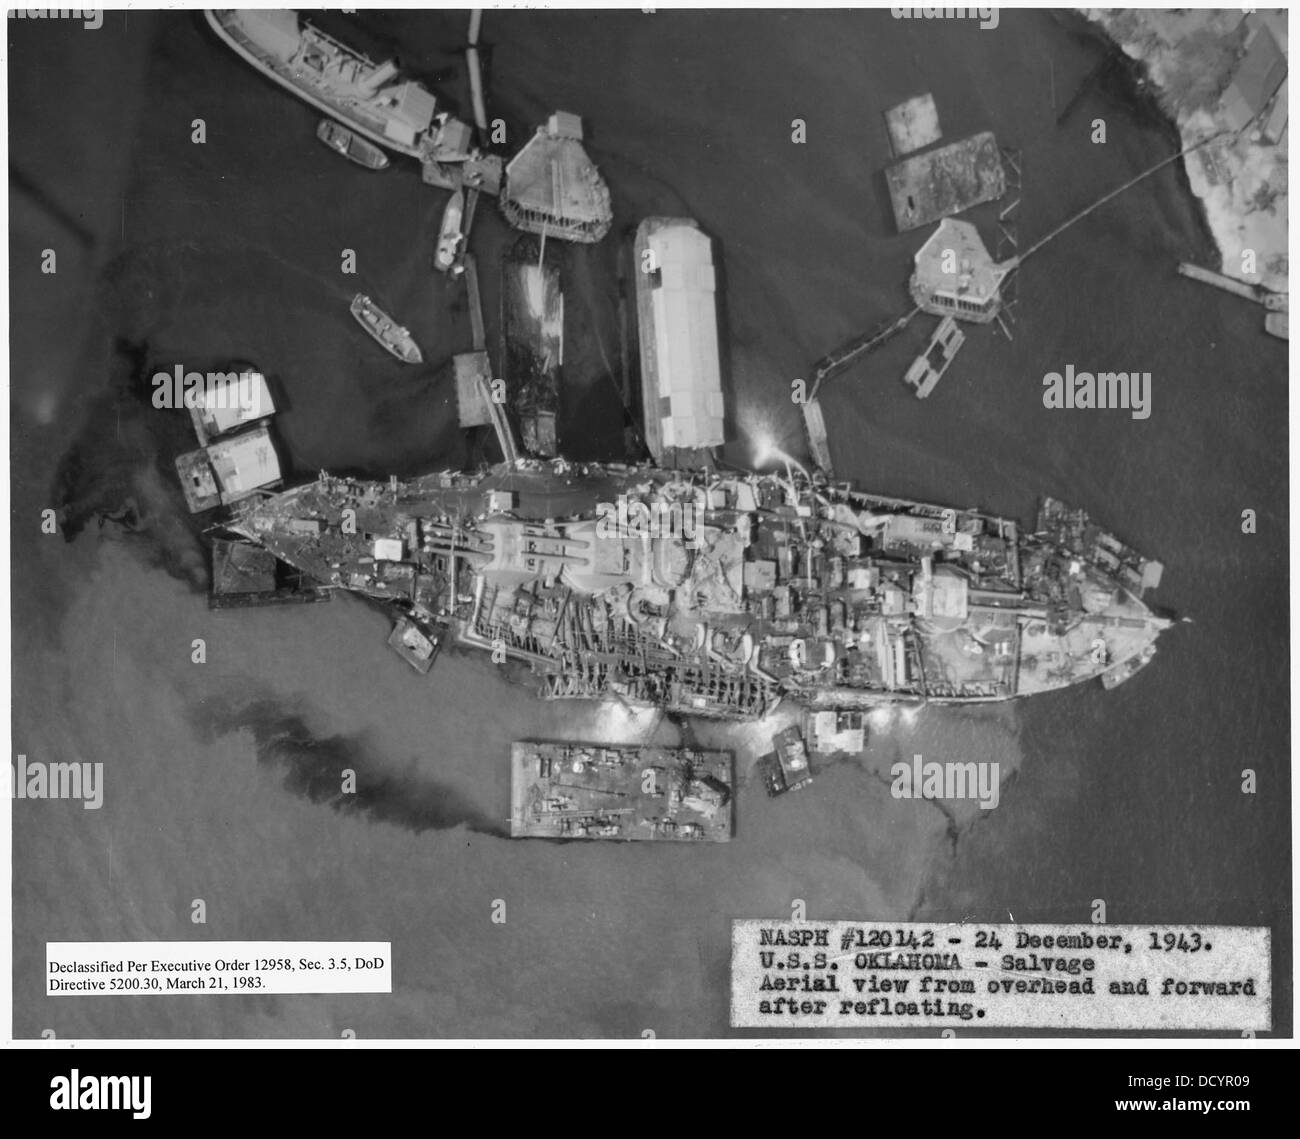 NASPH 5E120142- 24 December 1943, USS Oklahoma- Salvage, Aerial view from overhead and forward after refloating - Stock Image